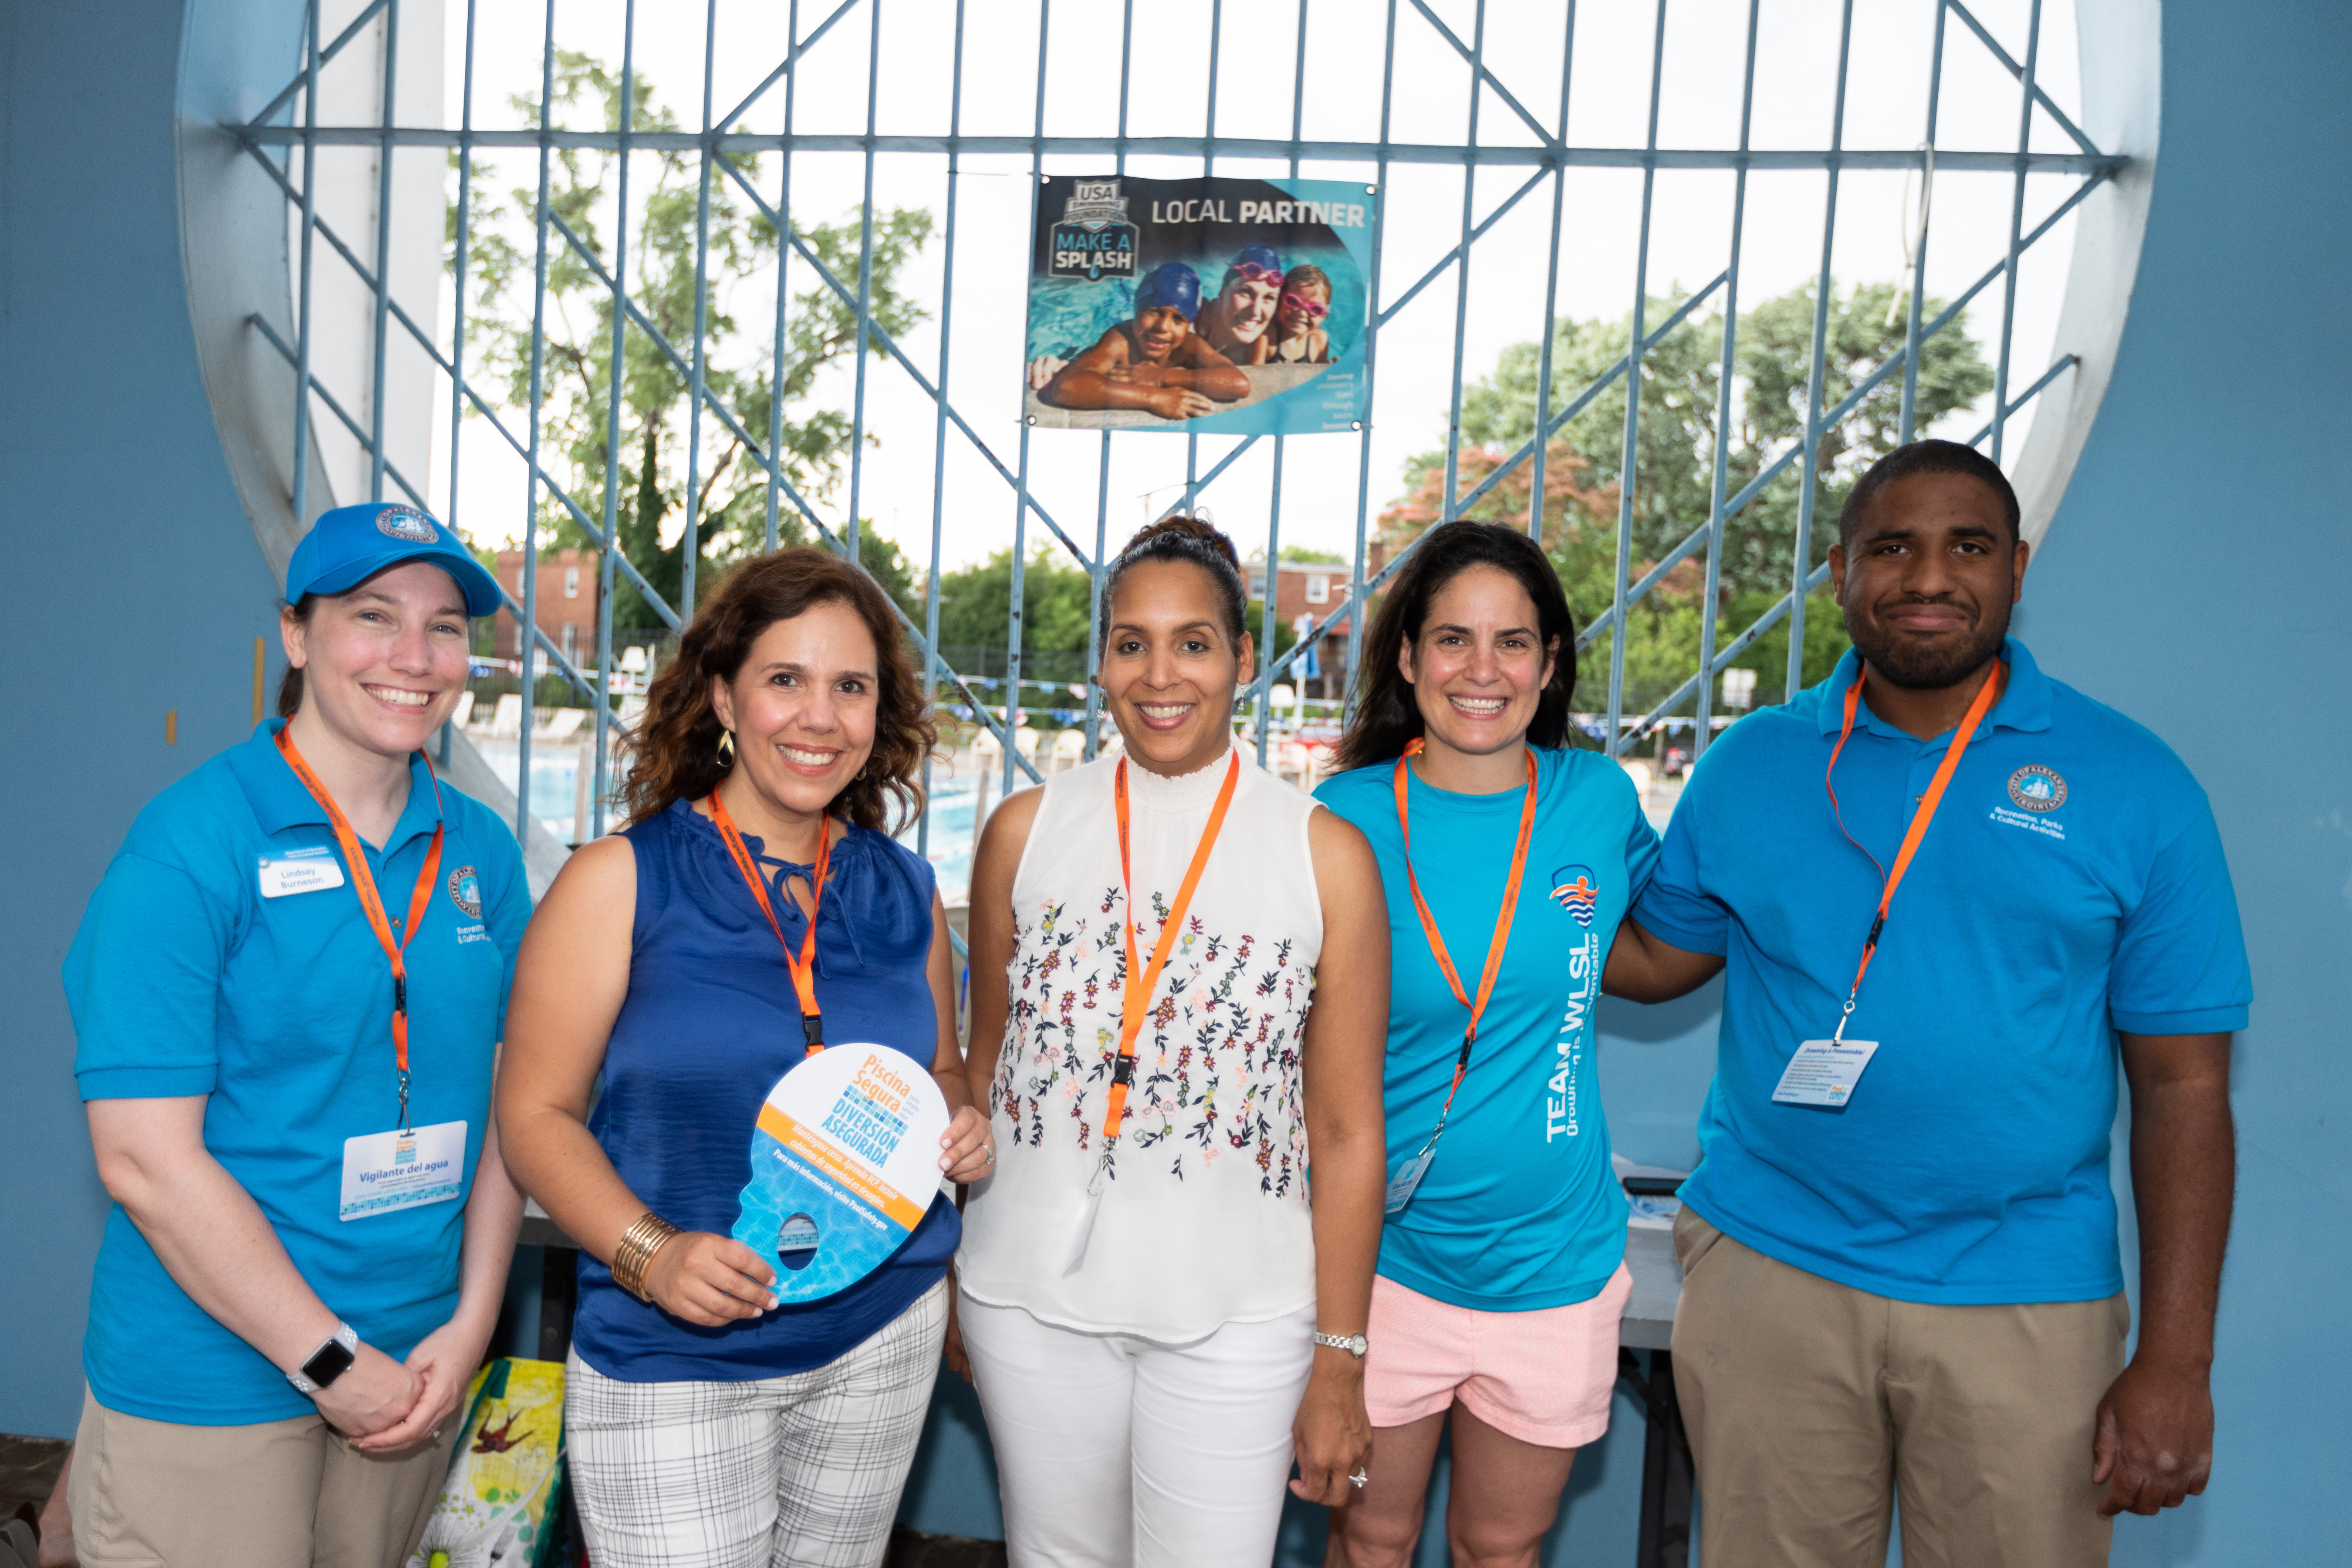 Left to right: City of Alexandria's Recreation manager Lindsay Burneson, CPSC Spanish-Spokesperson Carla Coolman, Pool Safely Campaign Leader Nikki Fleming, Olympic Swimmer Maddy Crippen and City of Alexandria Aquatics Manager Michael John.